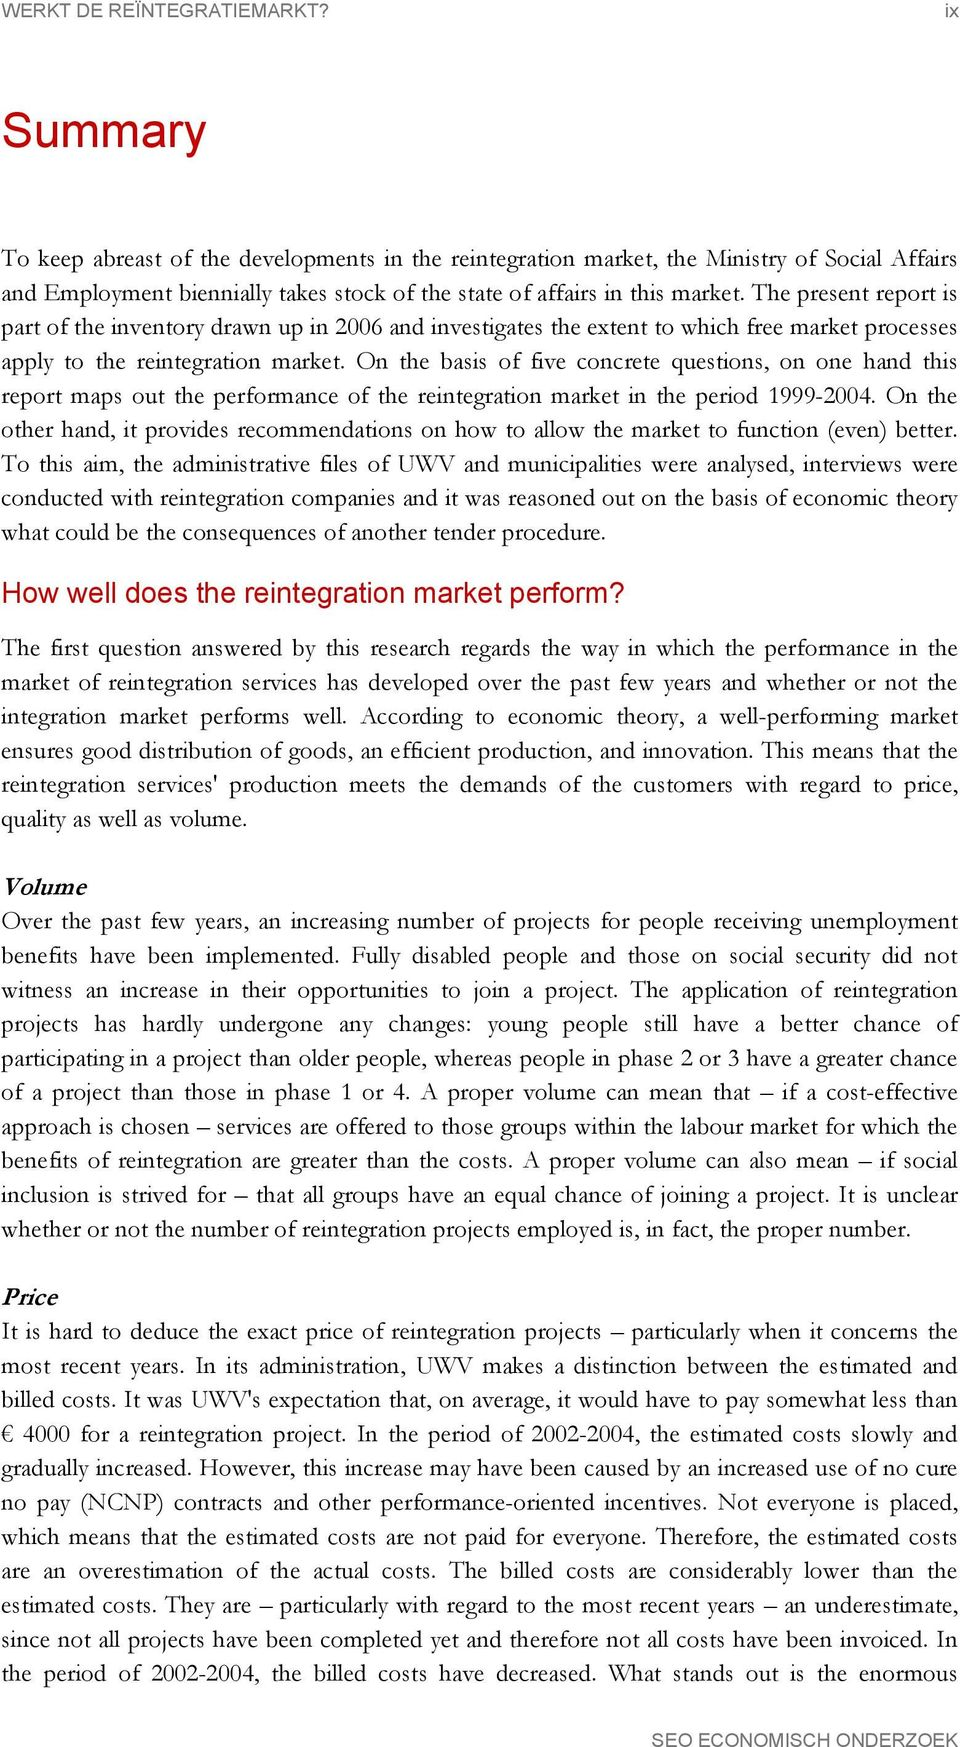 The present report is part of the inventory drawn up in 2006 and investigates the extent to which free market processes apply to the reintegration market.